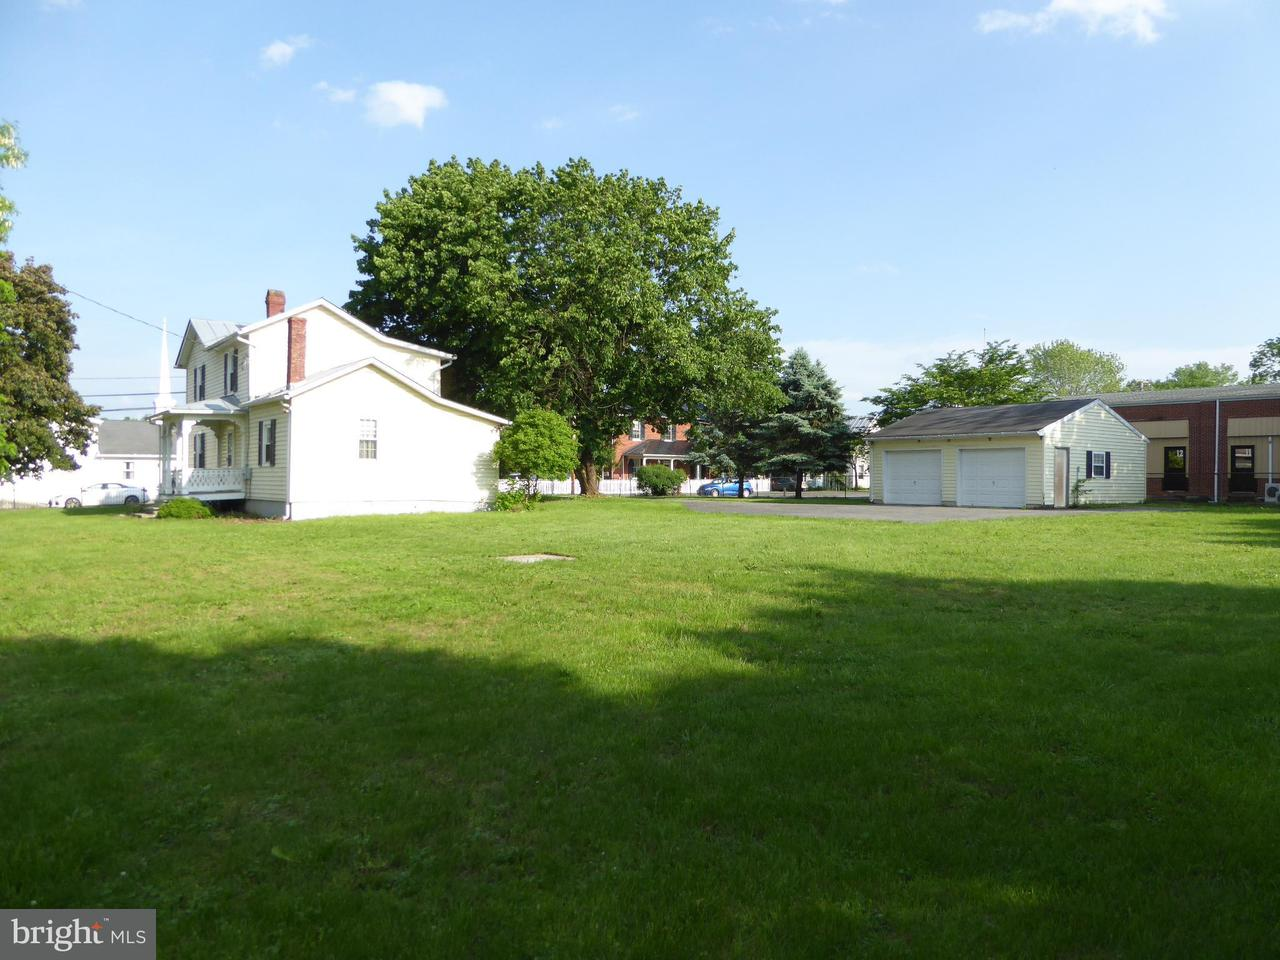 Single Family for Sale at 92679 Patterson Creek Rd Burlington, West Virginia 26710 United States